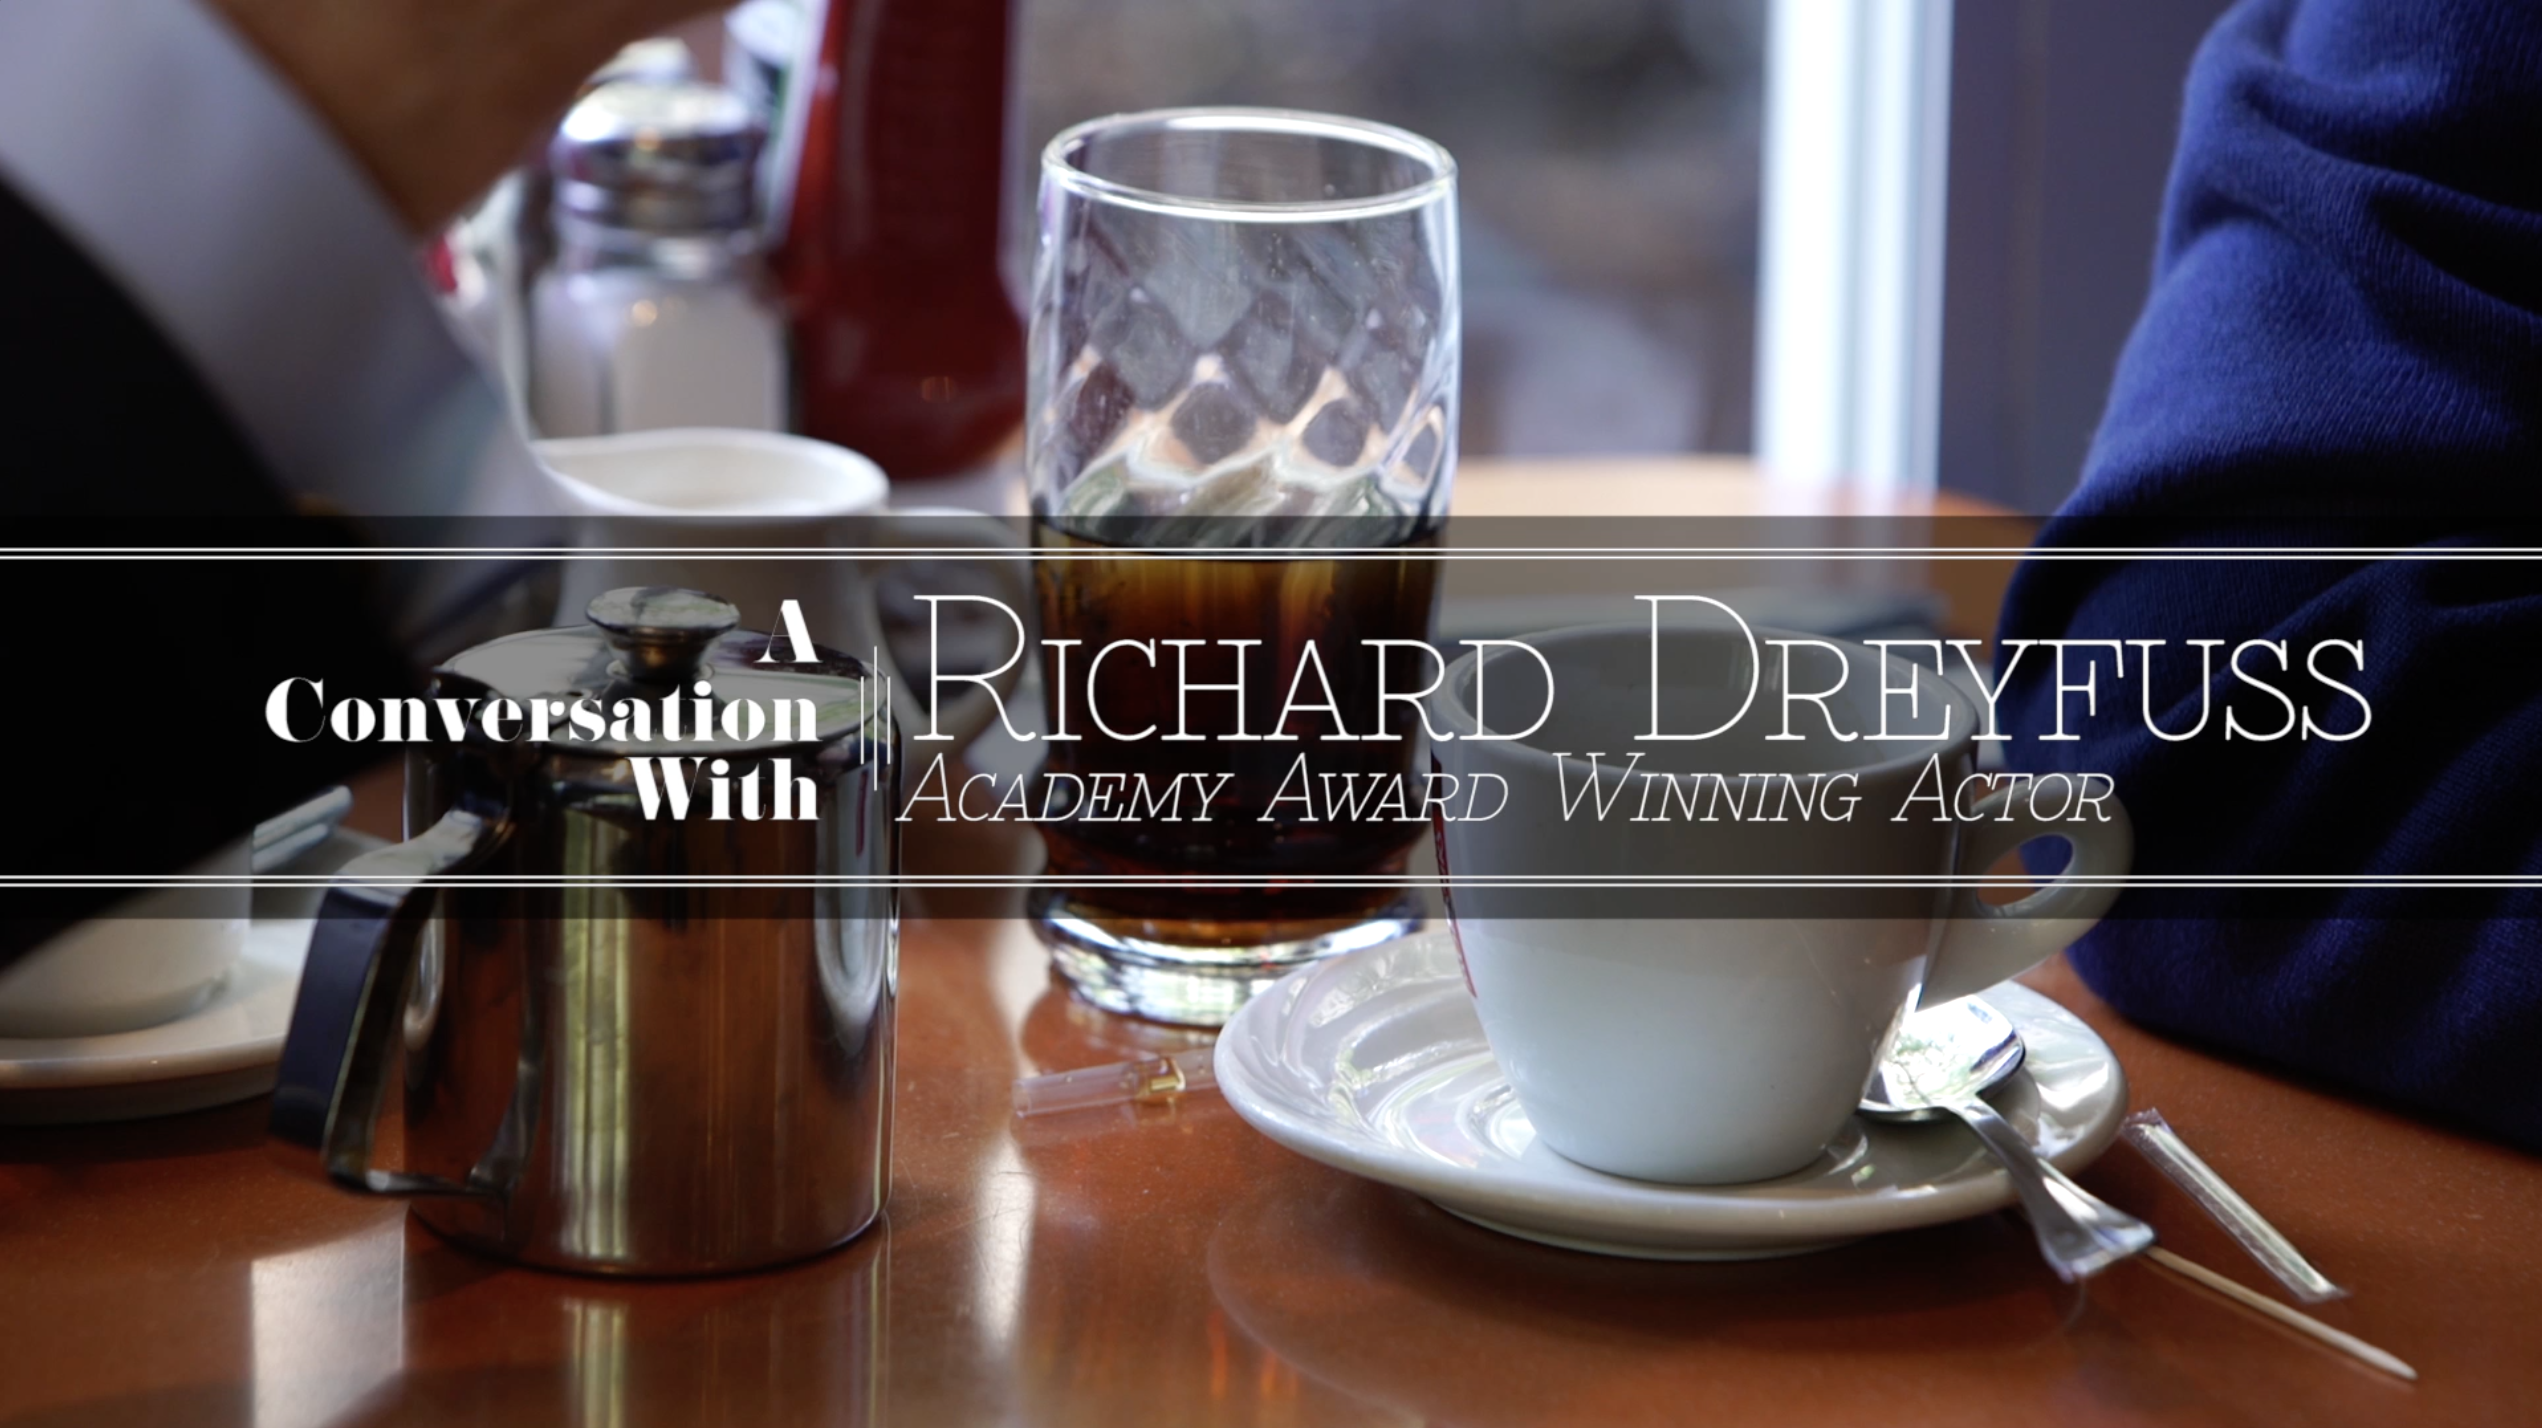 A Convo with Richard Dreyfuss